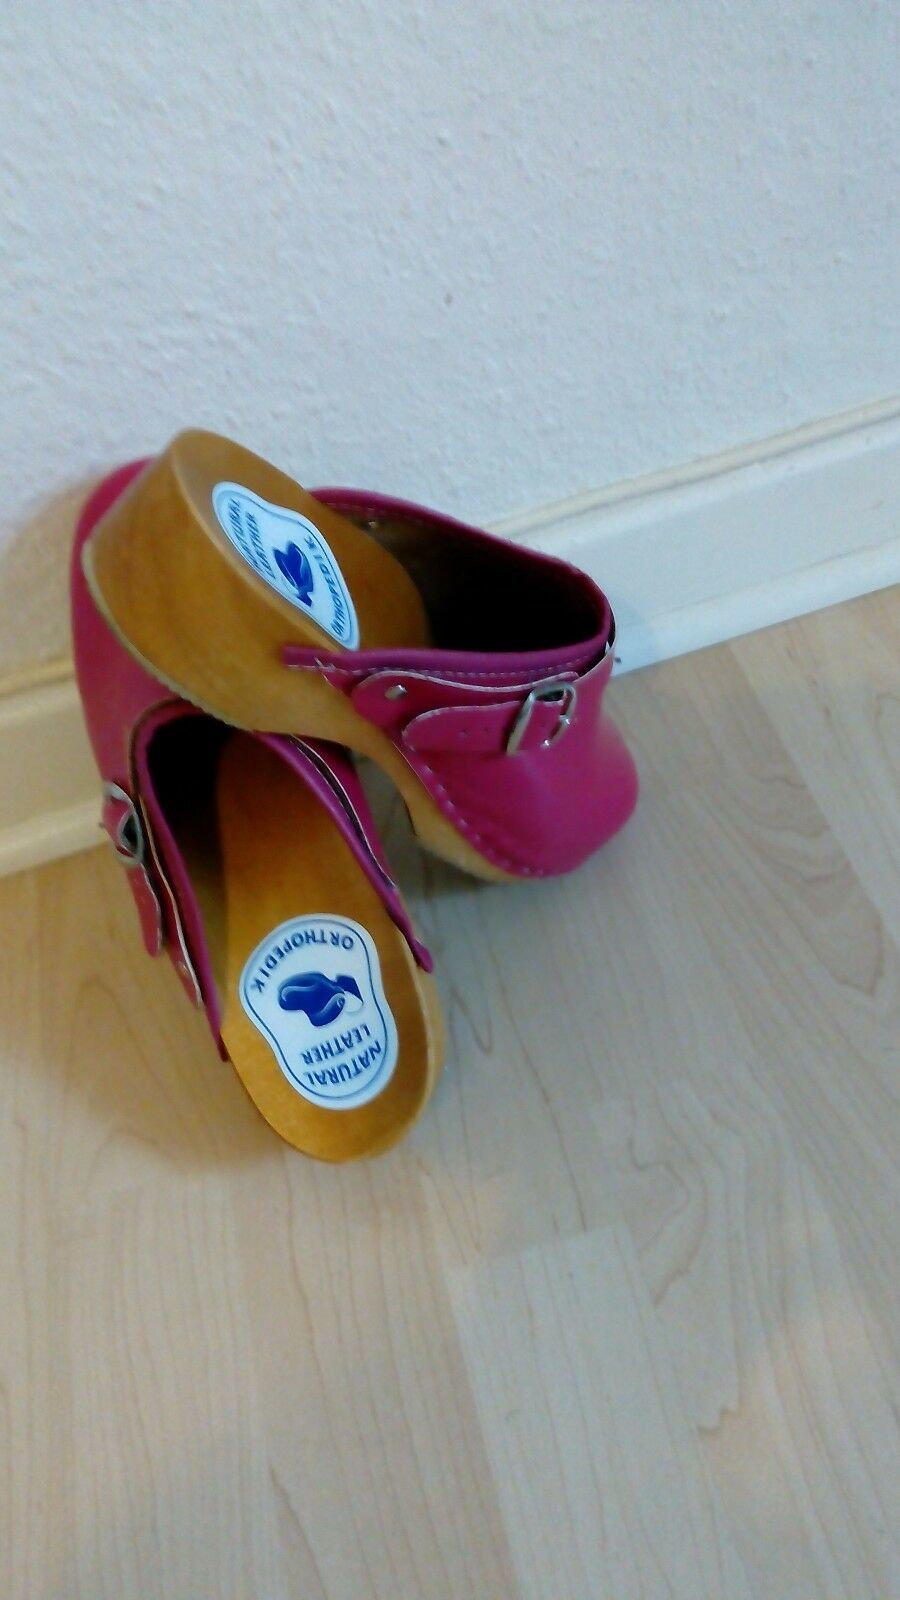 PURE NATURAL LEATHER ORTHOPEDIC SLIP ON WOODEN SLIPPERS-PINK-ROSE COLOR SIZE 38